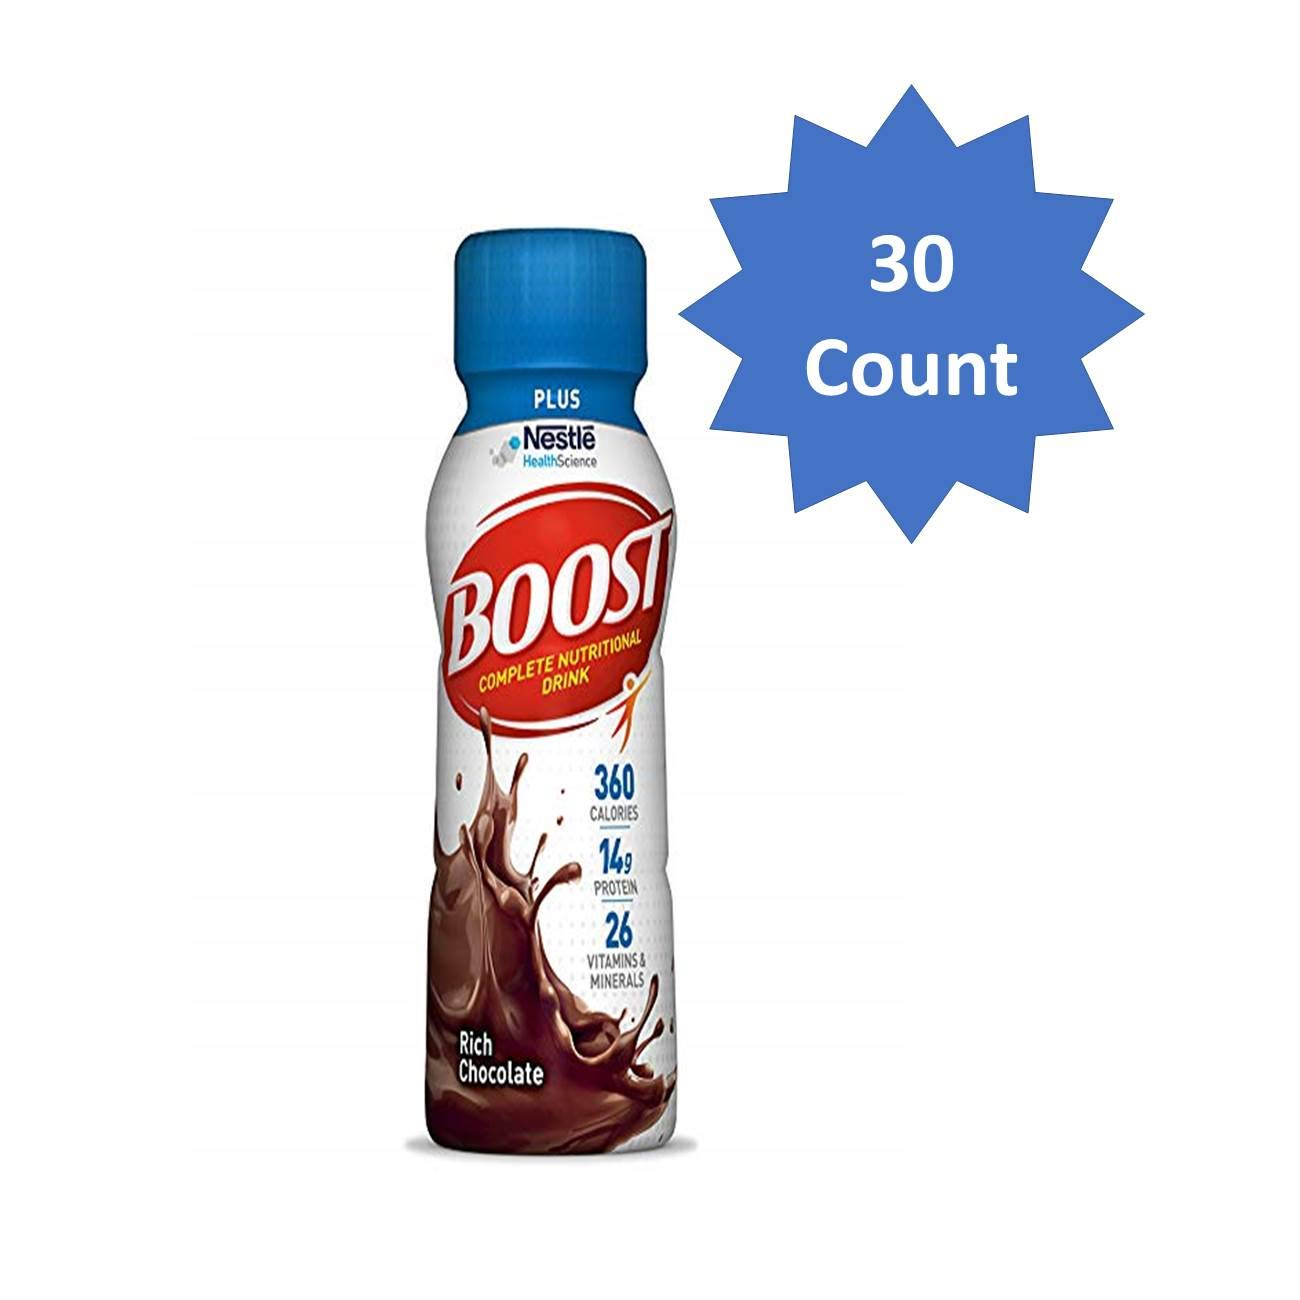 Boost Plus Complete Nutritional Drink, Rich Chocolate, 8 fl oz Bottle, 30 Count (Chocolate - 30 Count) by Boost Nutritional Drinks